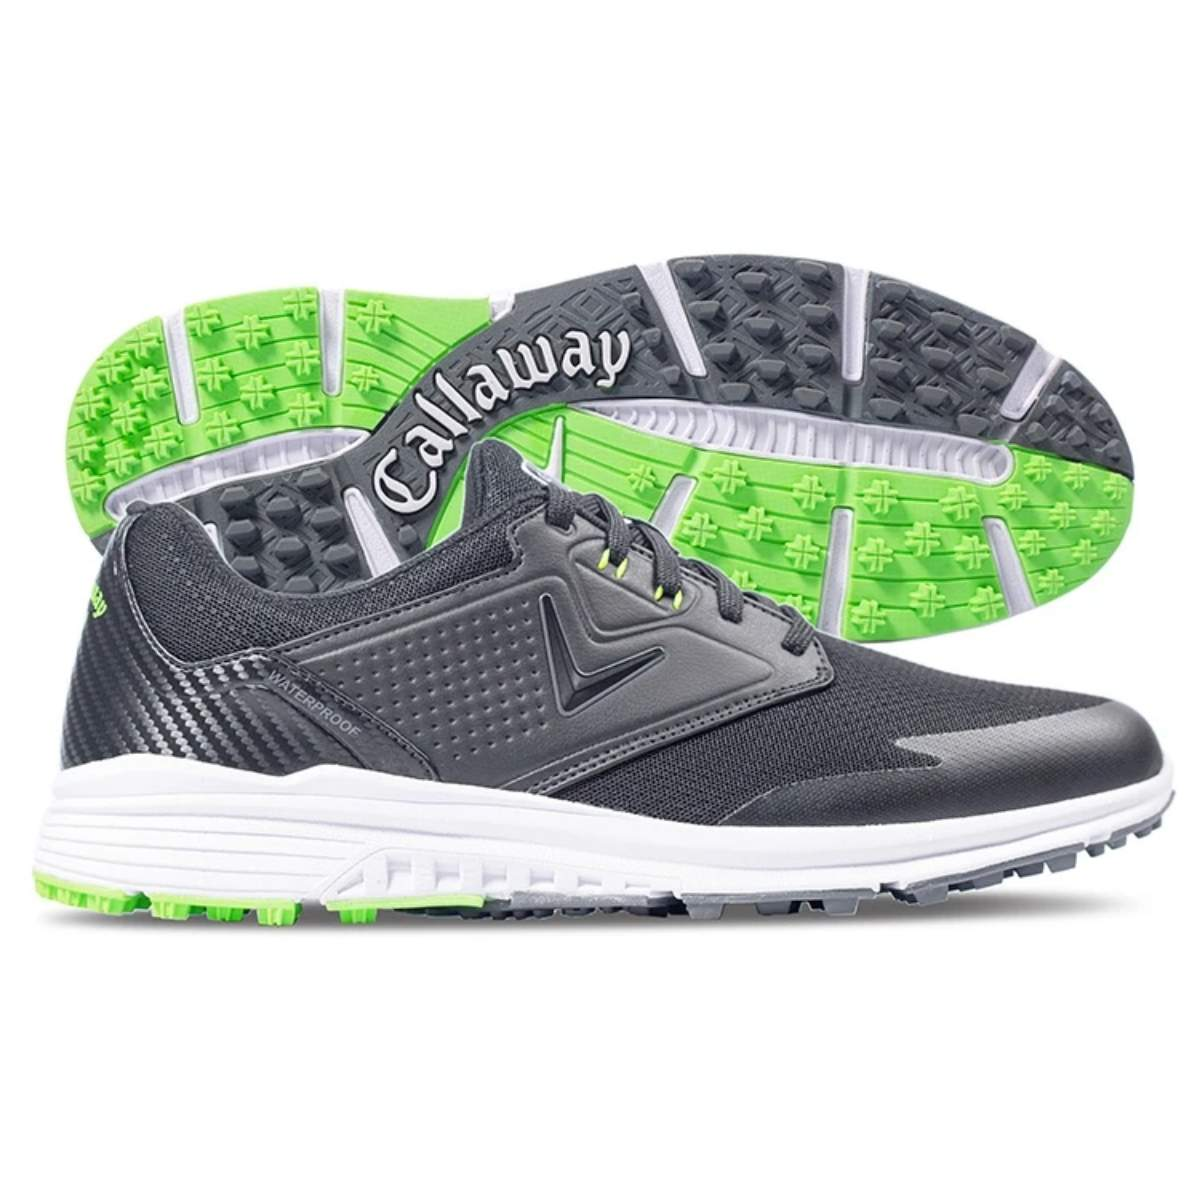 Callaway Men's Solana SL Golf Shoe - Black/Lime